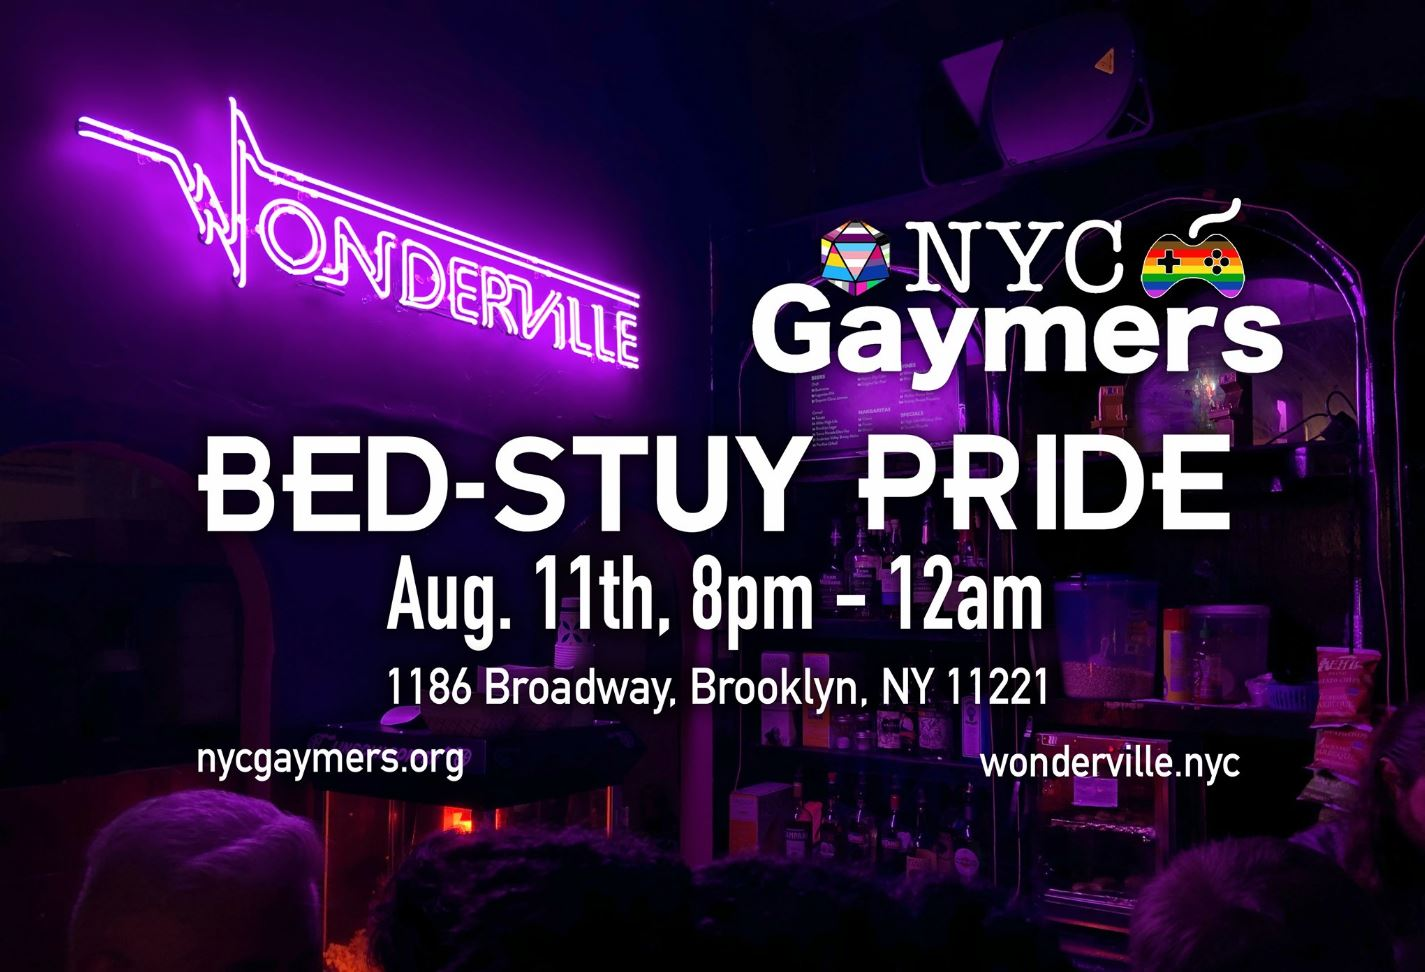 RSVP:  https://withfriends.co/Event/2298401/NYC_Gaymers_at_Wonderville_Bed_Stuy_Pride